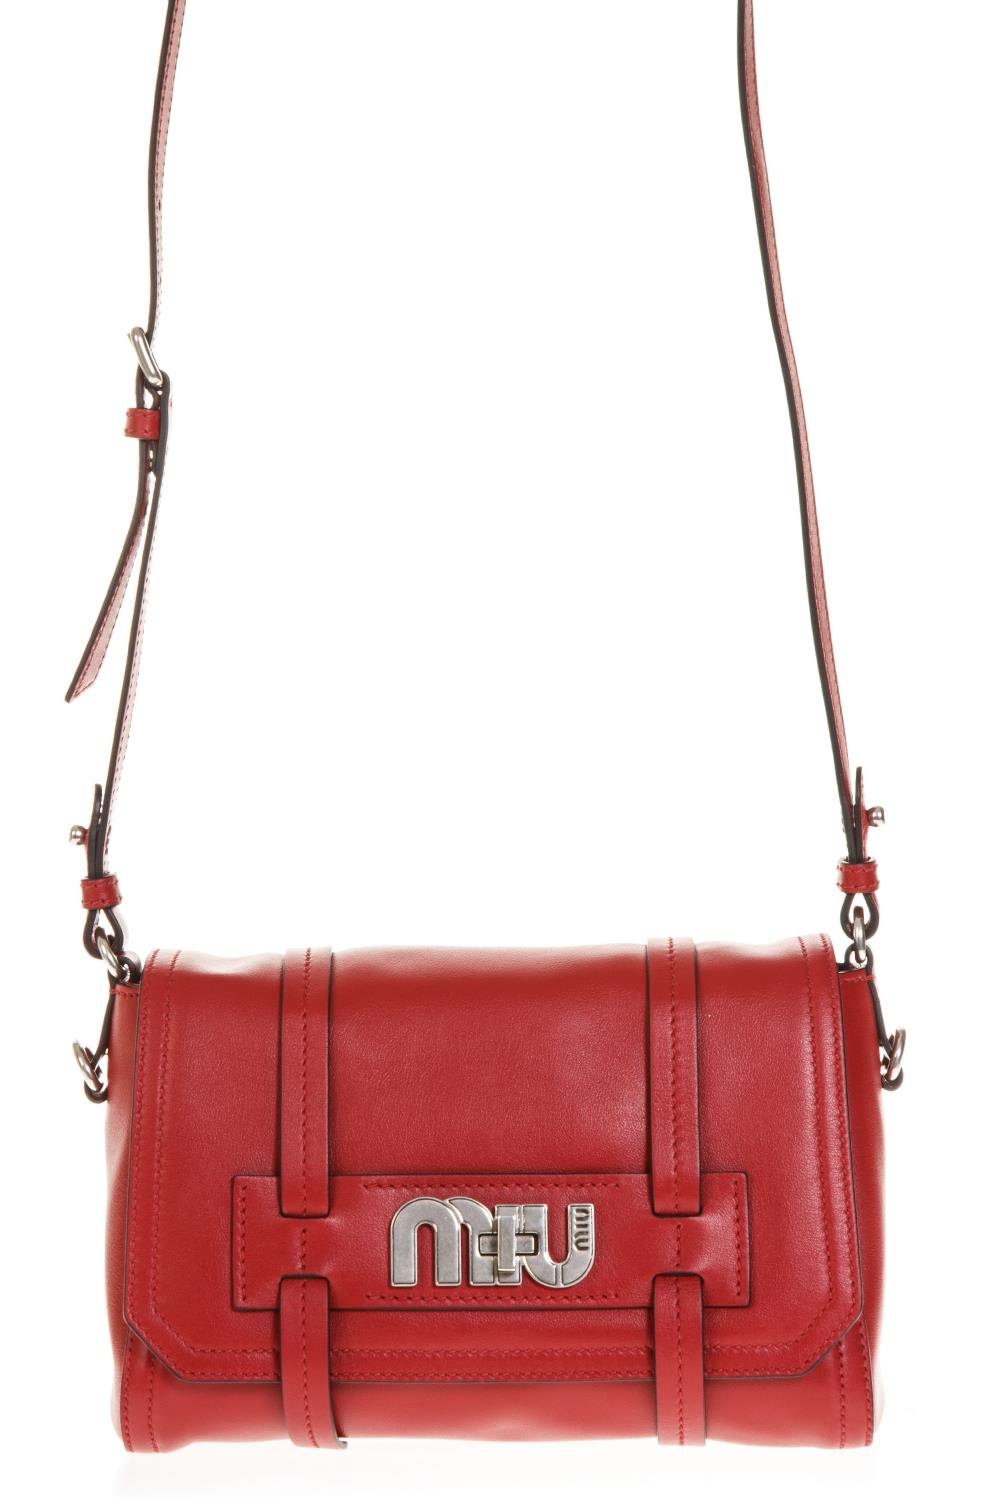 a75f89711ad0 RED LEATHER SHOULDER BAG FW 2018 - MIU MIU - Boutique Galiano